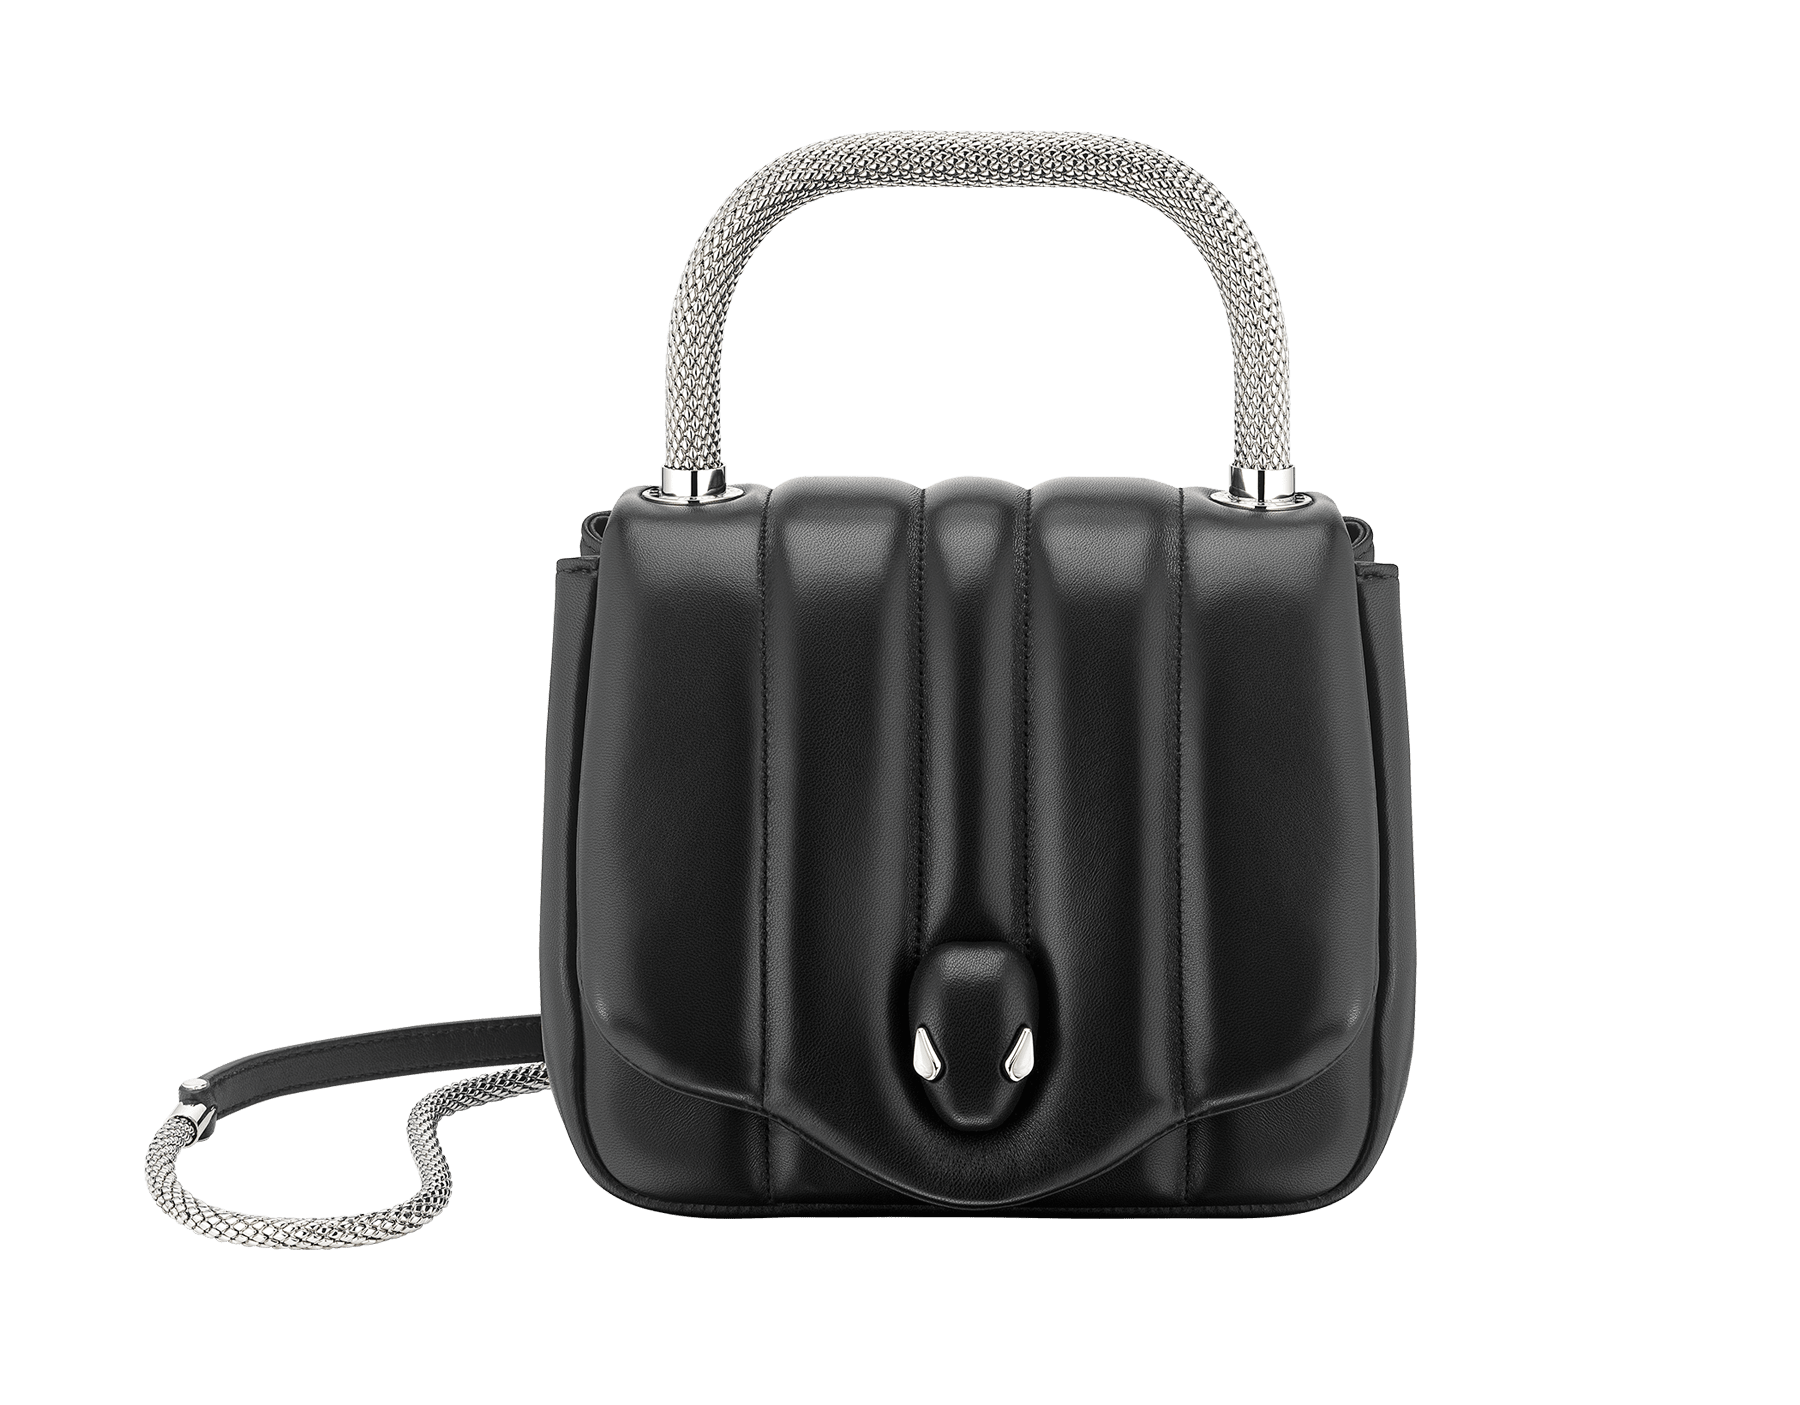 """Ambush x Bvlgari"" top handle bag in black nappa leather. New Serpenti head closure in palladium plated brass dressed with black nappa leather, finished with seductive mother of pearl eyes. Limited edition. 290343 image 1"